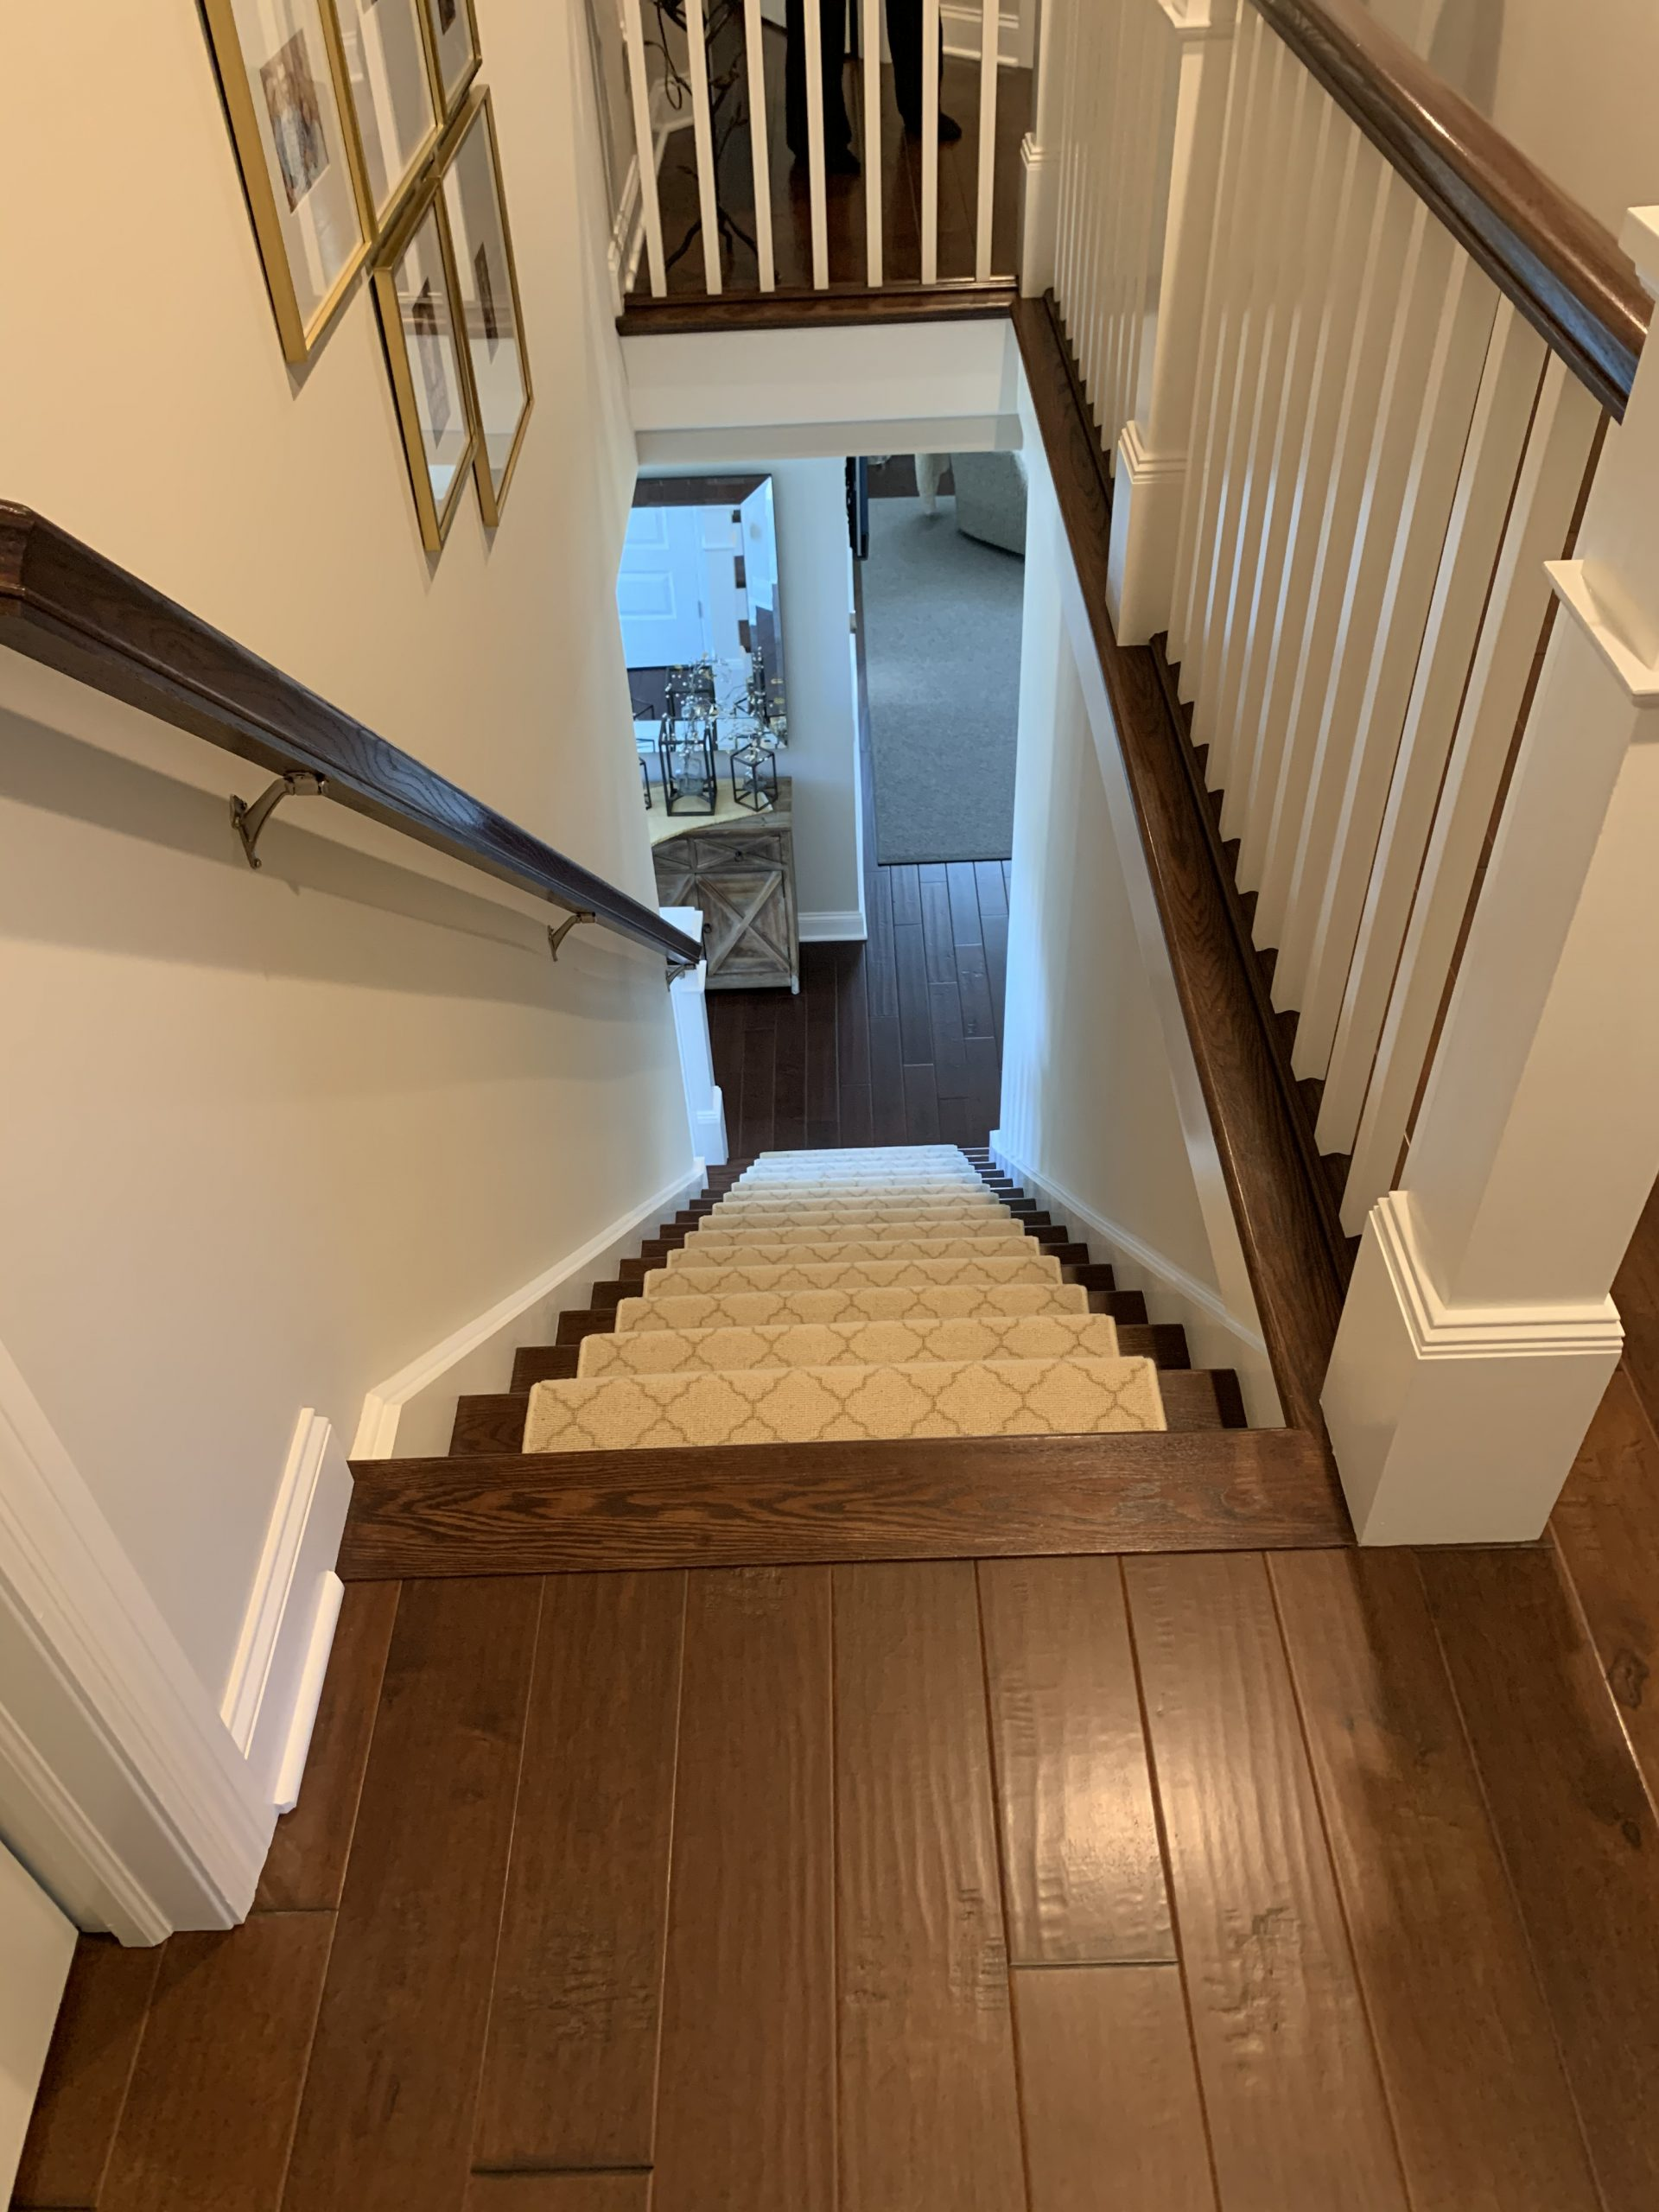 messner-flooring-stair-runner-scaled